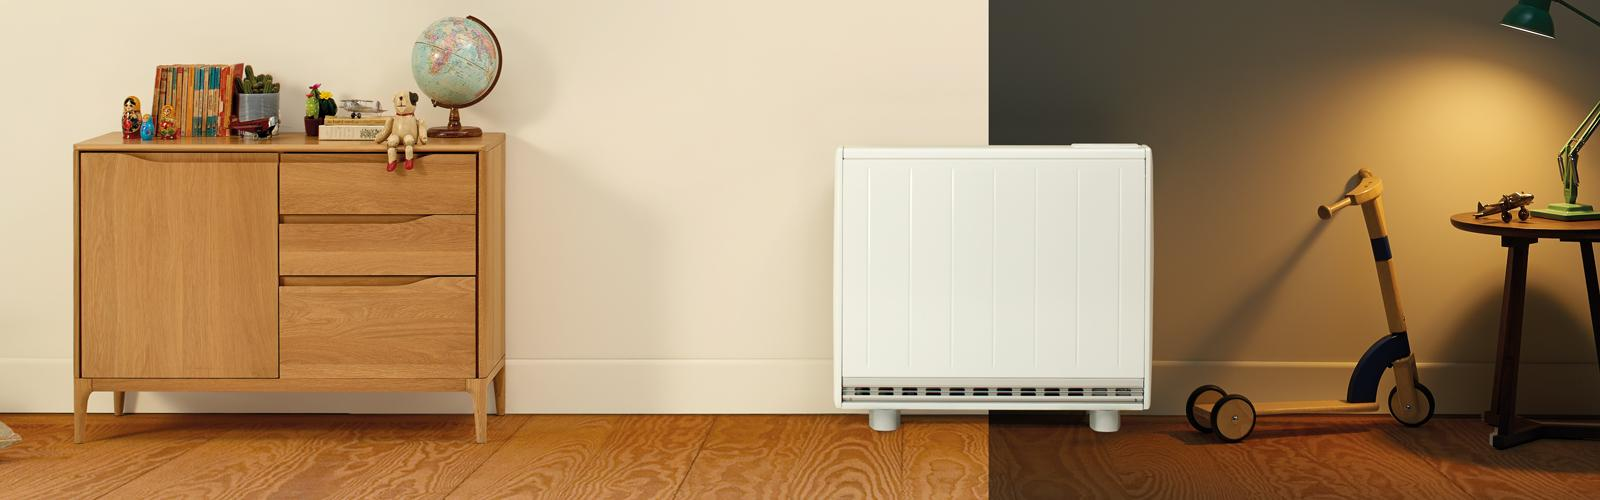 Installed Electric Heating Home Systems From Dimplex